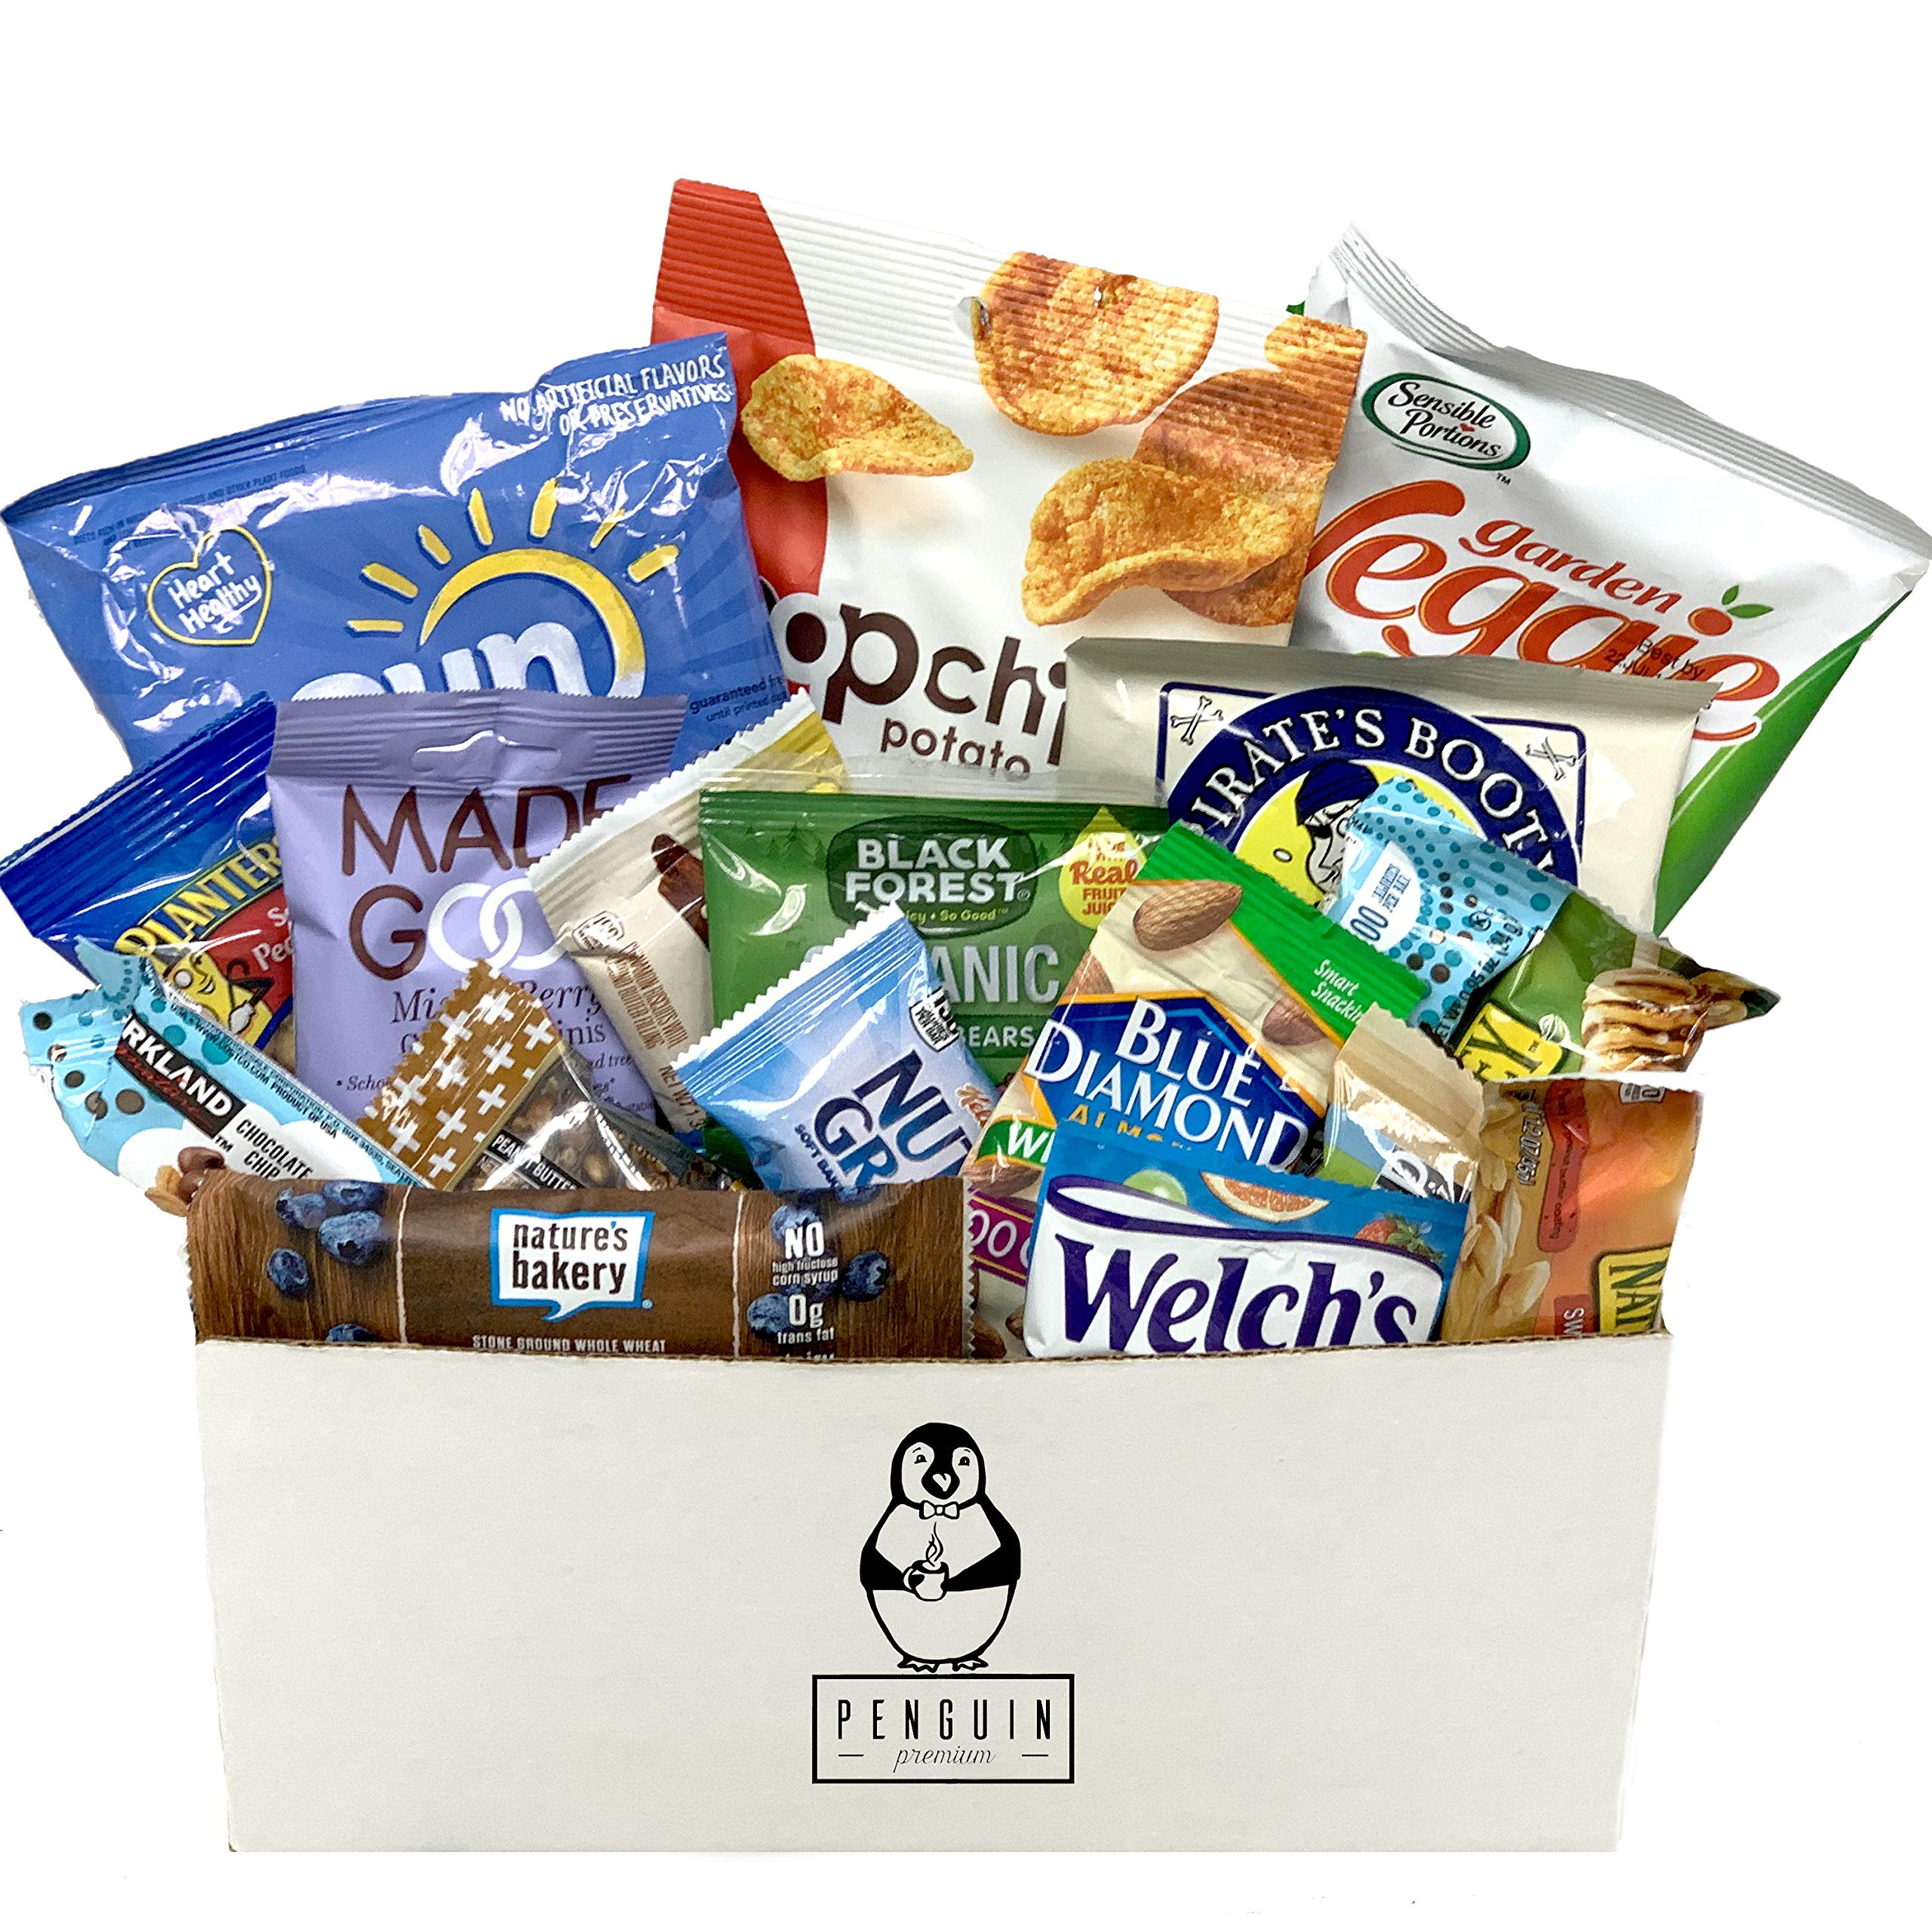 Healthy Snacks Care Package (20 Count Variety Snack Pack) Assortment of Nuts, Bars, Healthy Chips and More!